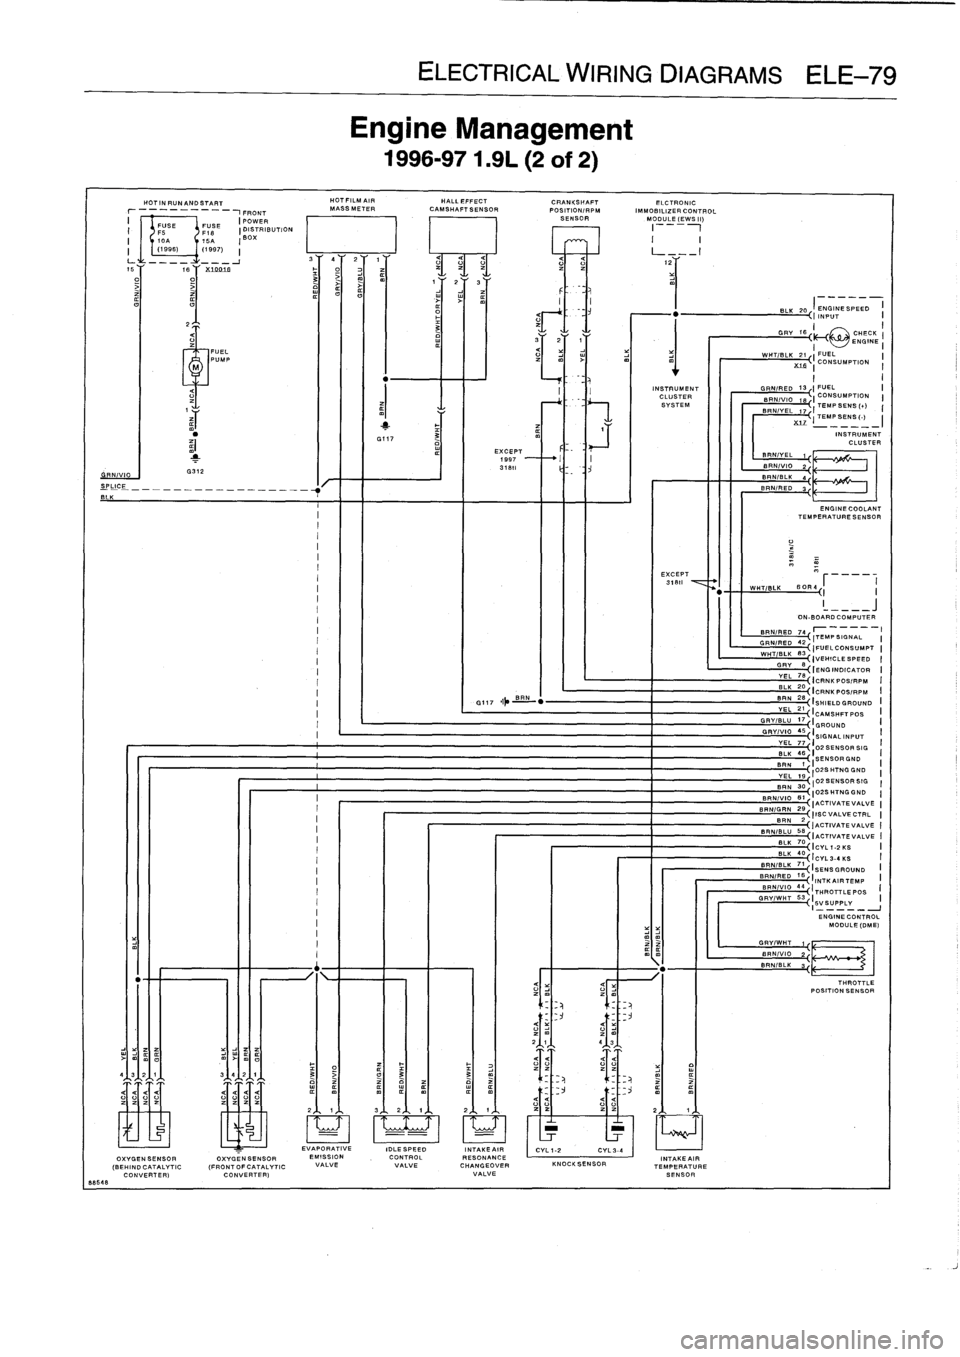 Wiring Diagram Database: Bmw E39 Wiring Diagram Pdf